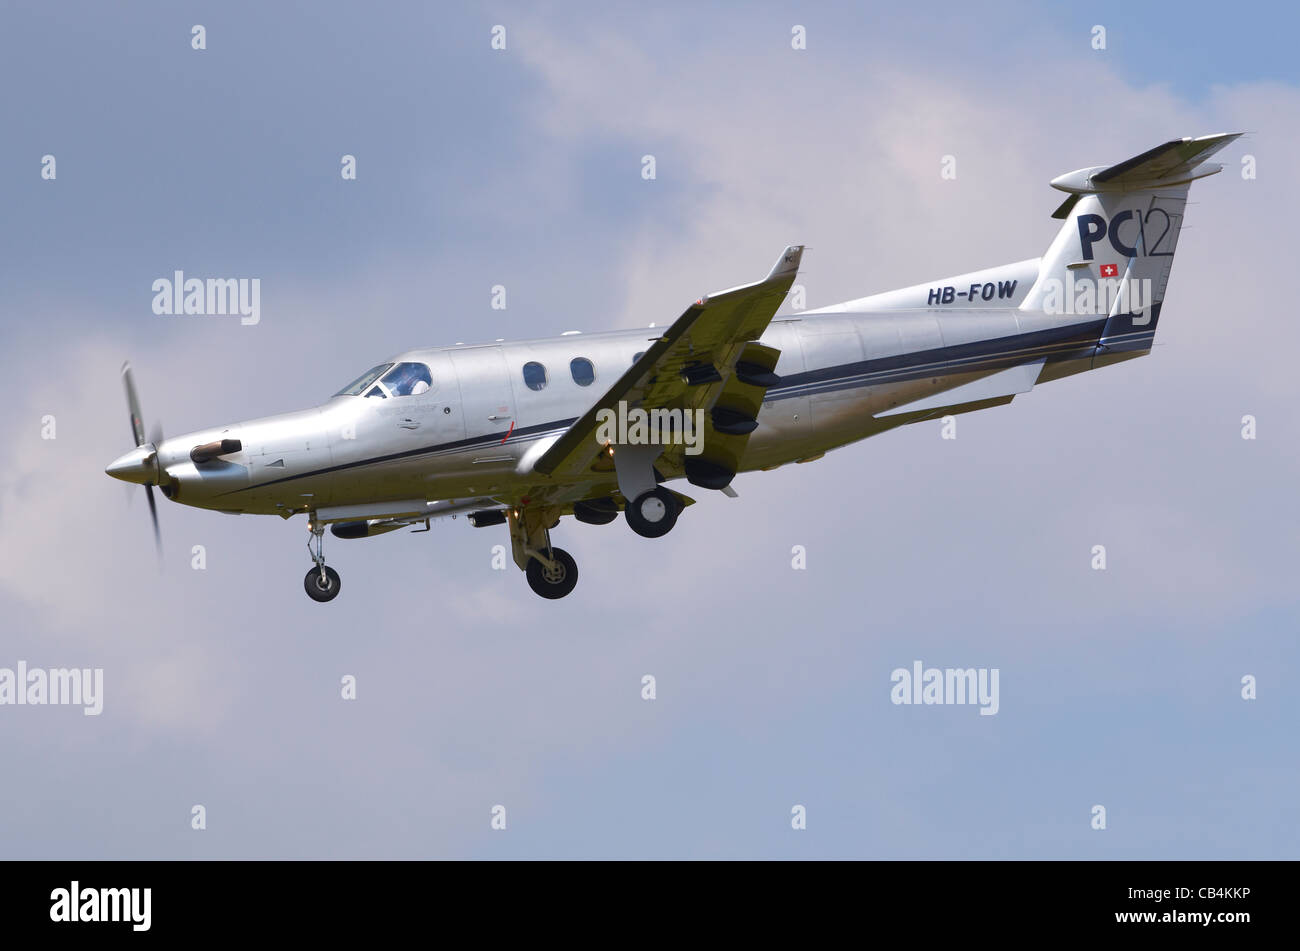 Pilatus PC-12 on approach for landing at RAF Fairford, UK - Stock Image